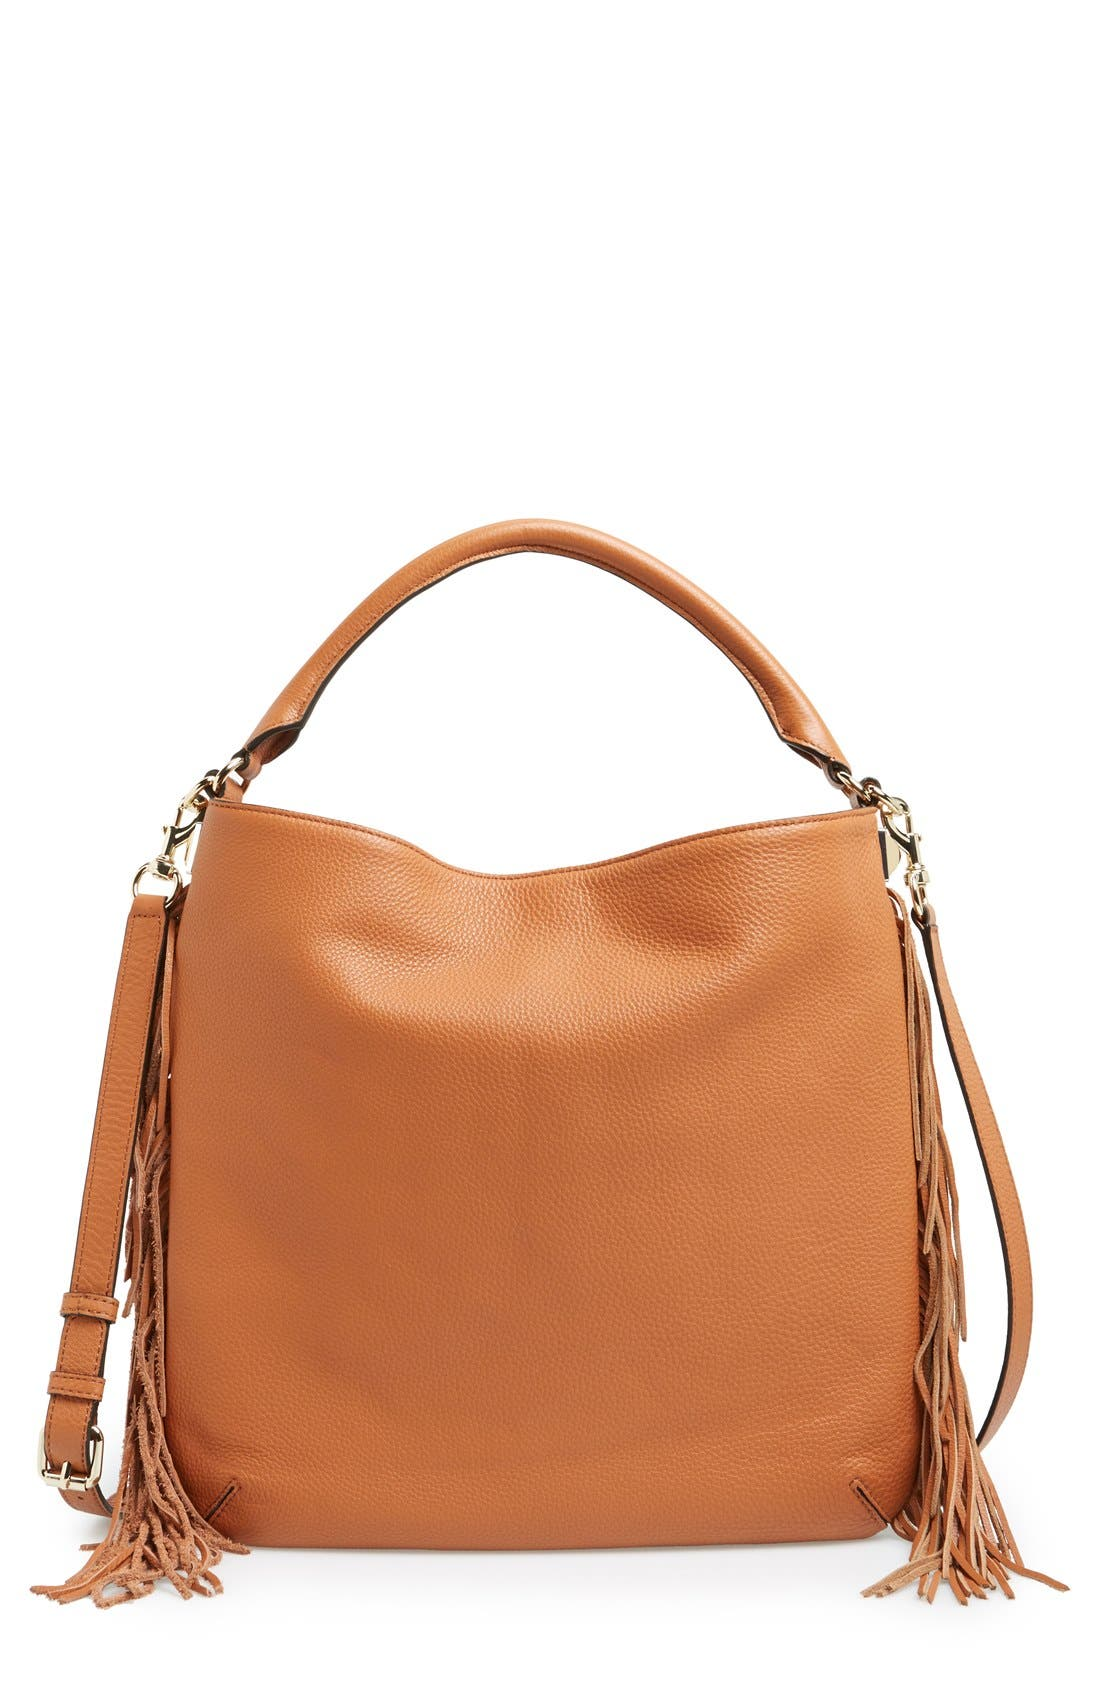 Alternate Image 1 Selected - Rebecca Minkoff 'Clark' Hobo Bag